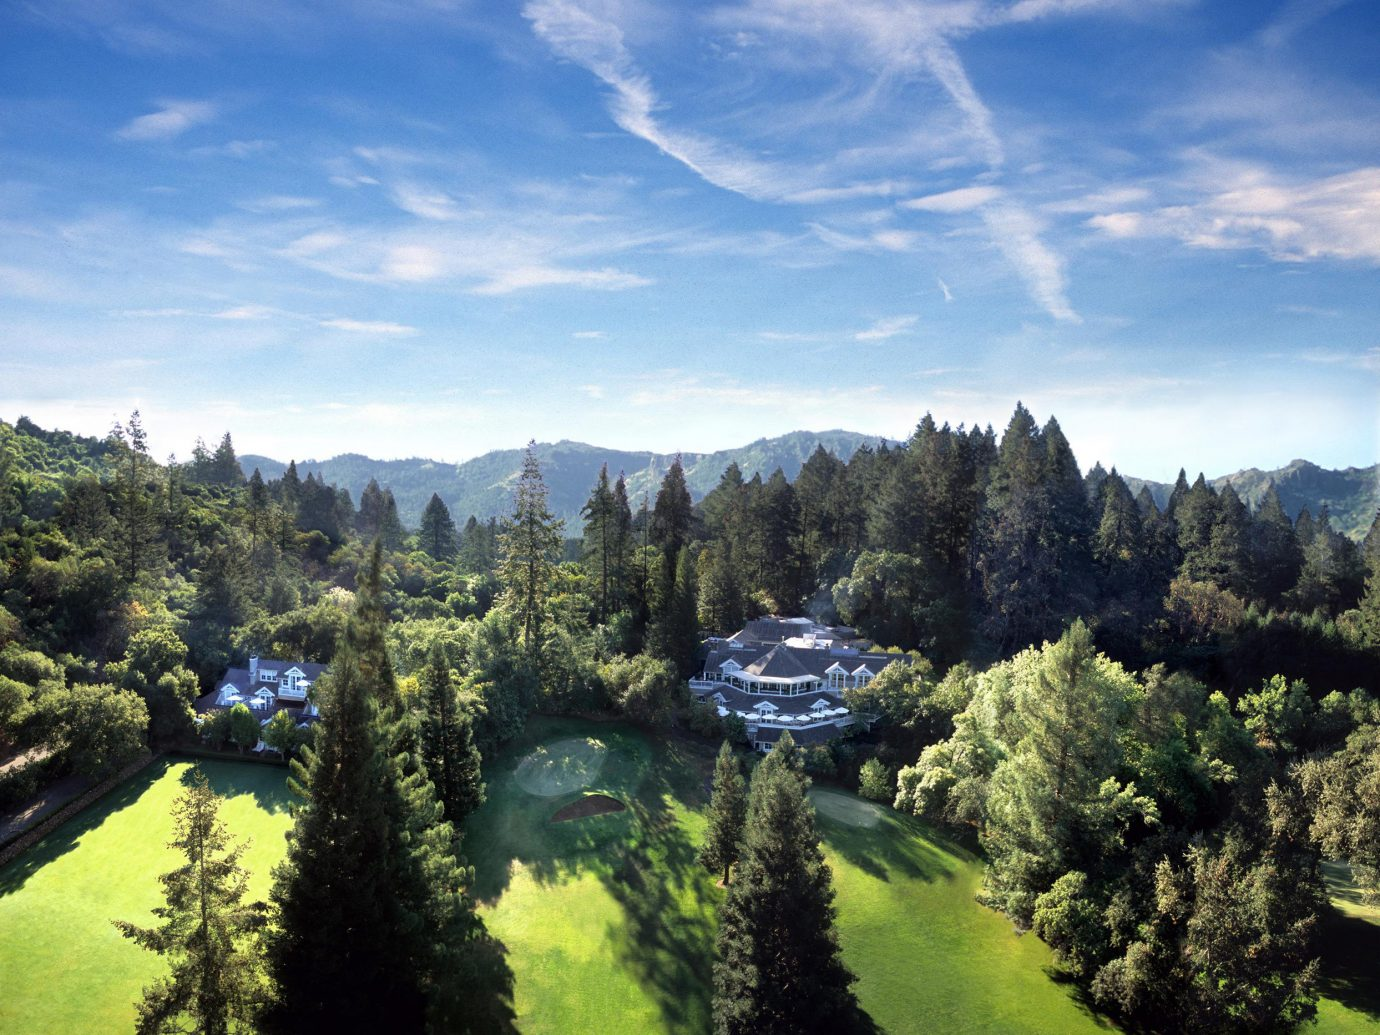 Health + Wellness Hotels Spa Retreats tree outdoor sky mountainous landforms plant Nature mountain wilderness ecosystem mountain range cloud Lake Forest reflection hill landscape valley alps ridge wooded Garden hillside lush day